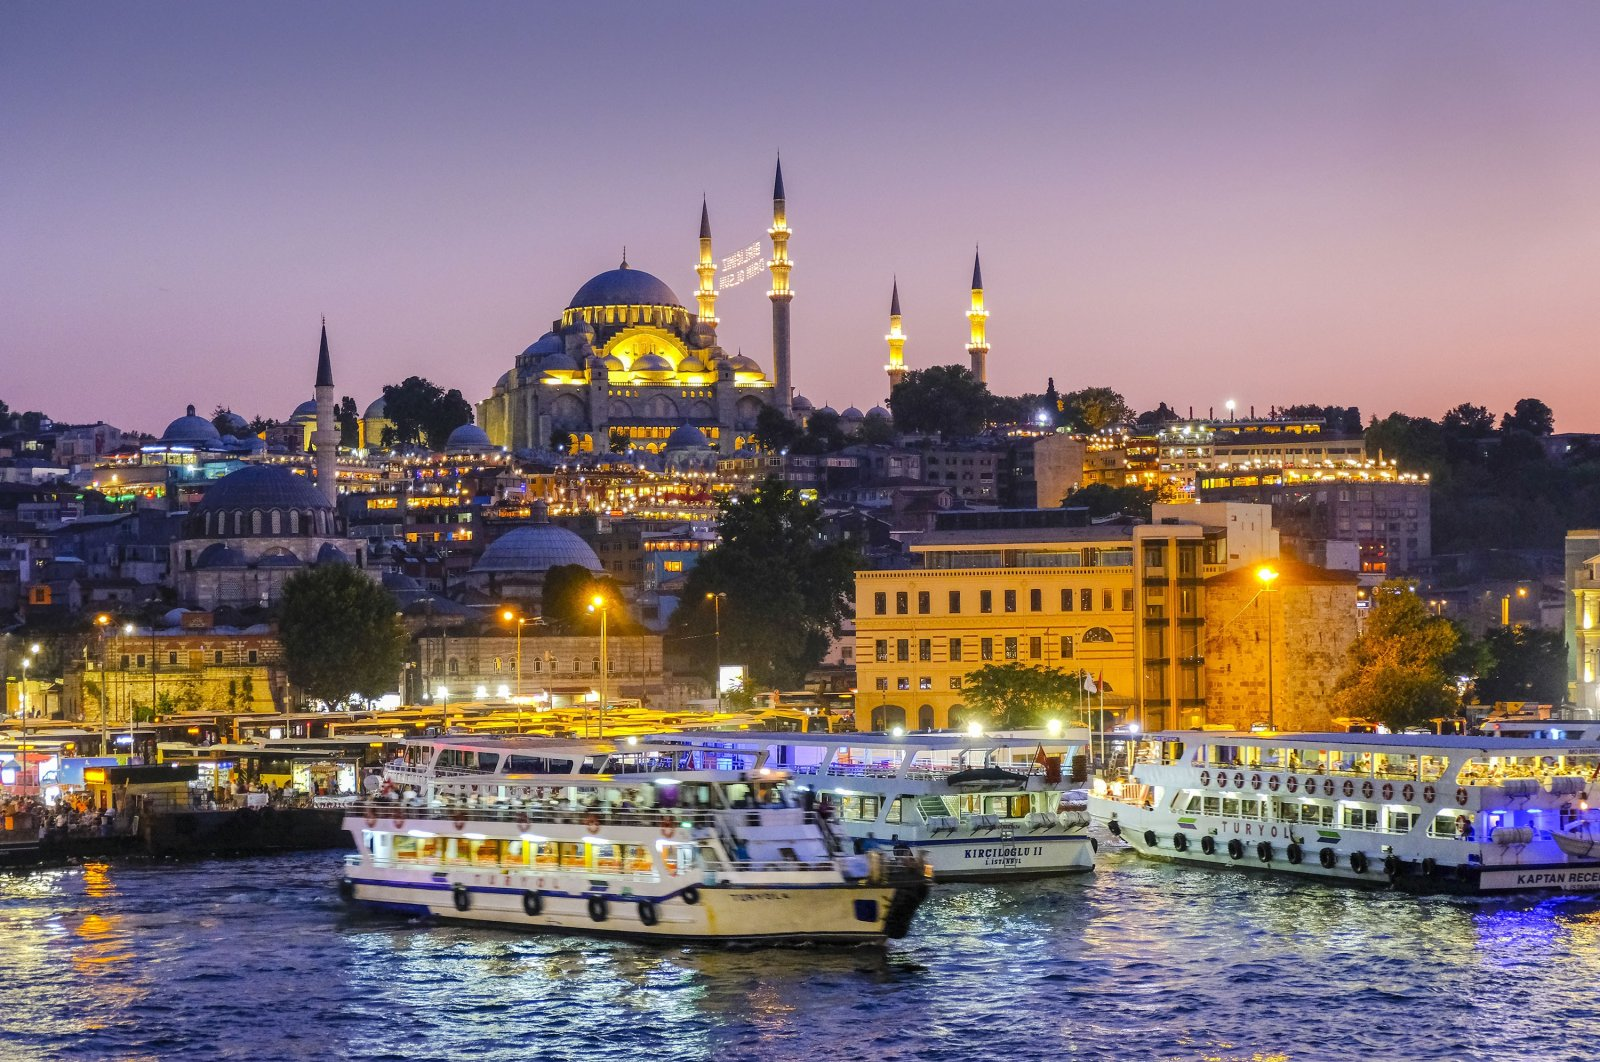 A view of the Fatih district against the backdrop of mosques, in Istanbul, Turkey, July 21, 2018. (Getty Images)